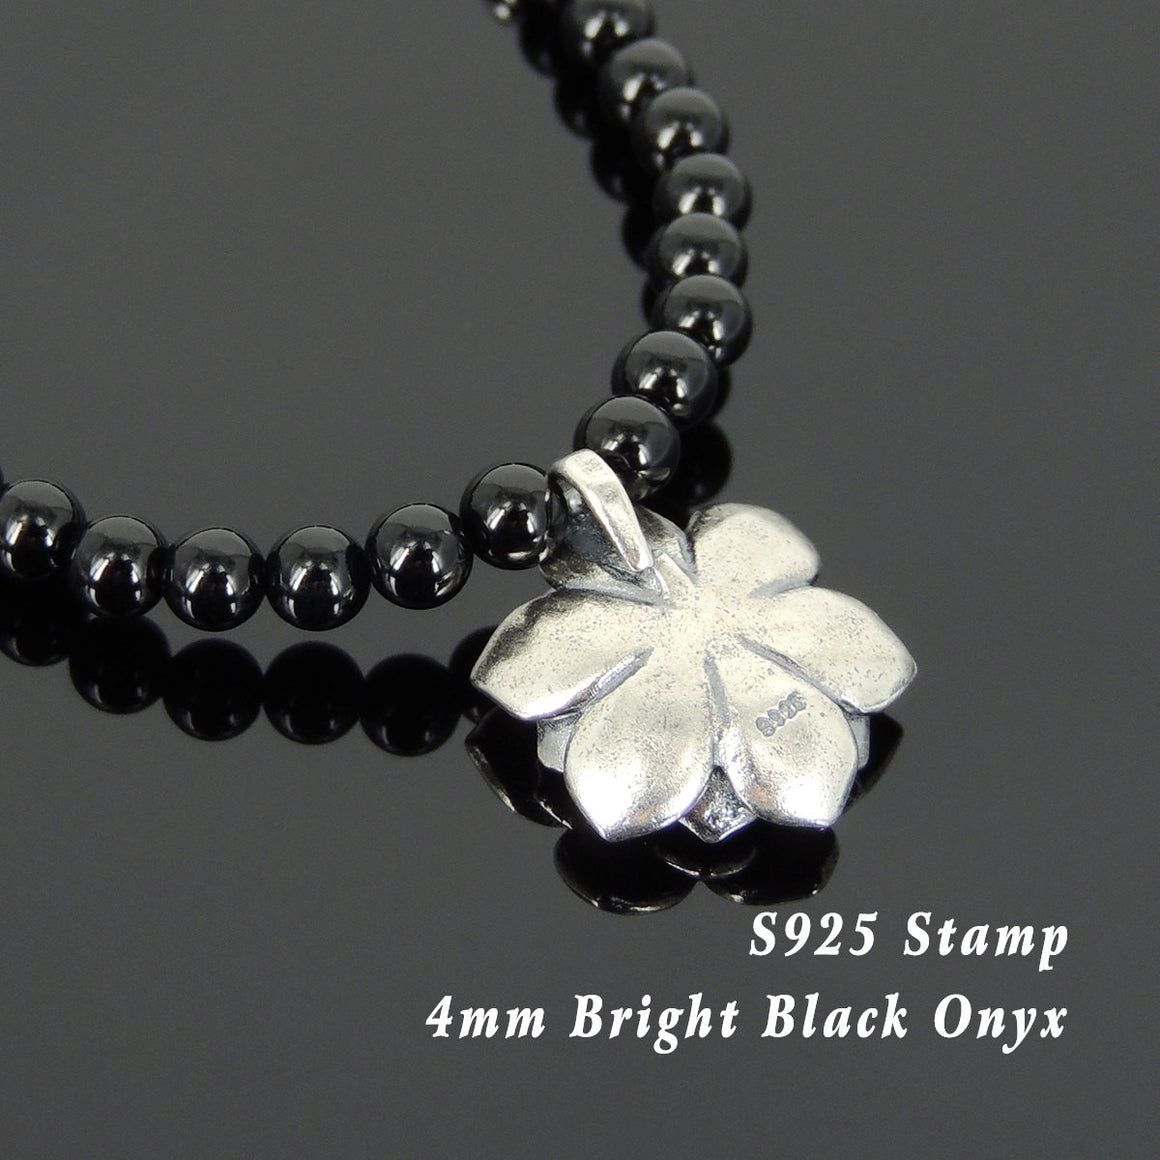 4mm Bright Black Onyx Healing Gemstone Necklace with S925 Sterling Silver 3D Lotus Protection Pendant, Spacers Beads, & S-hook Clasp - Handmade by Gem & Silver NK129